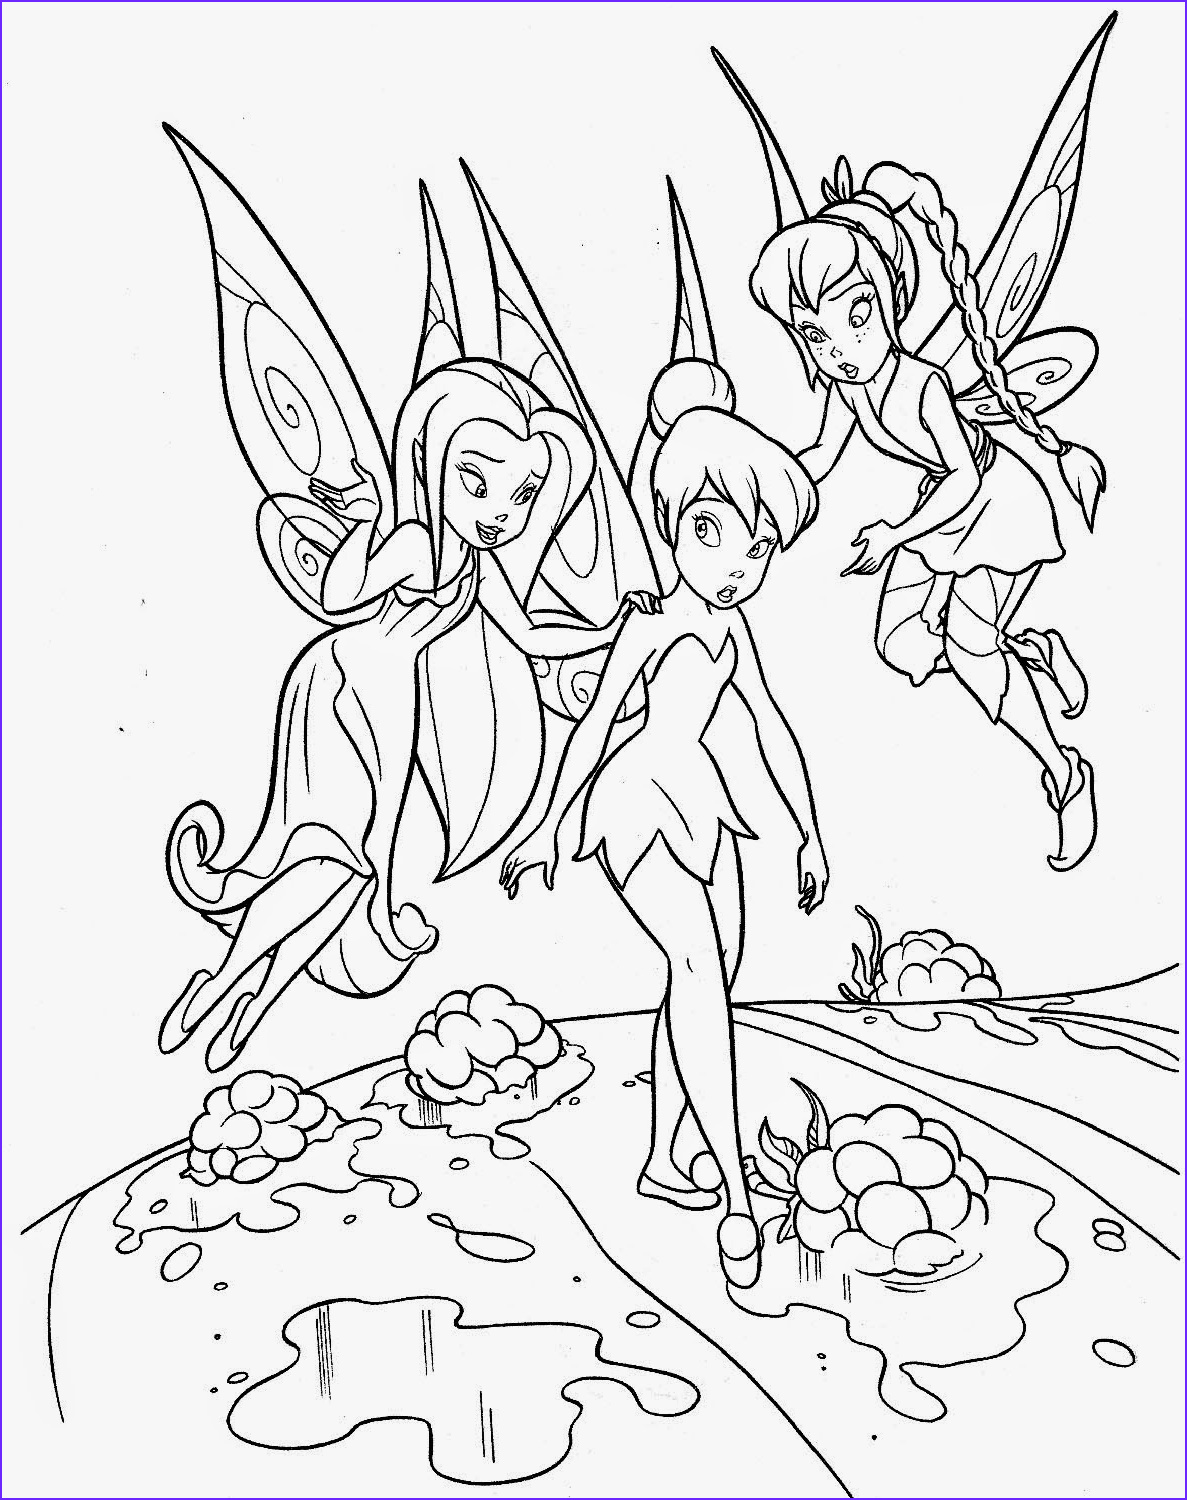 Tinker Belle Coloring Page Cool Photography Coloring Pages Tinkerbell Coloring Pages and Clip Art